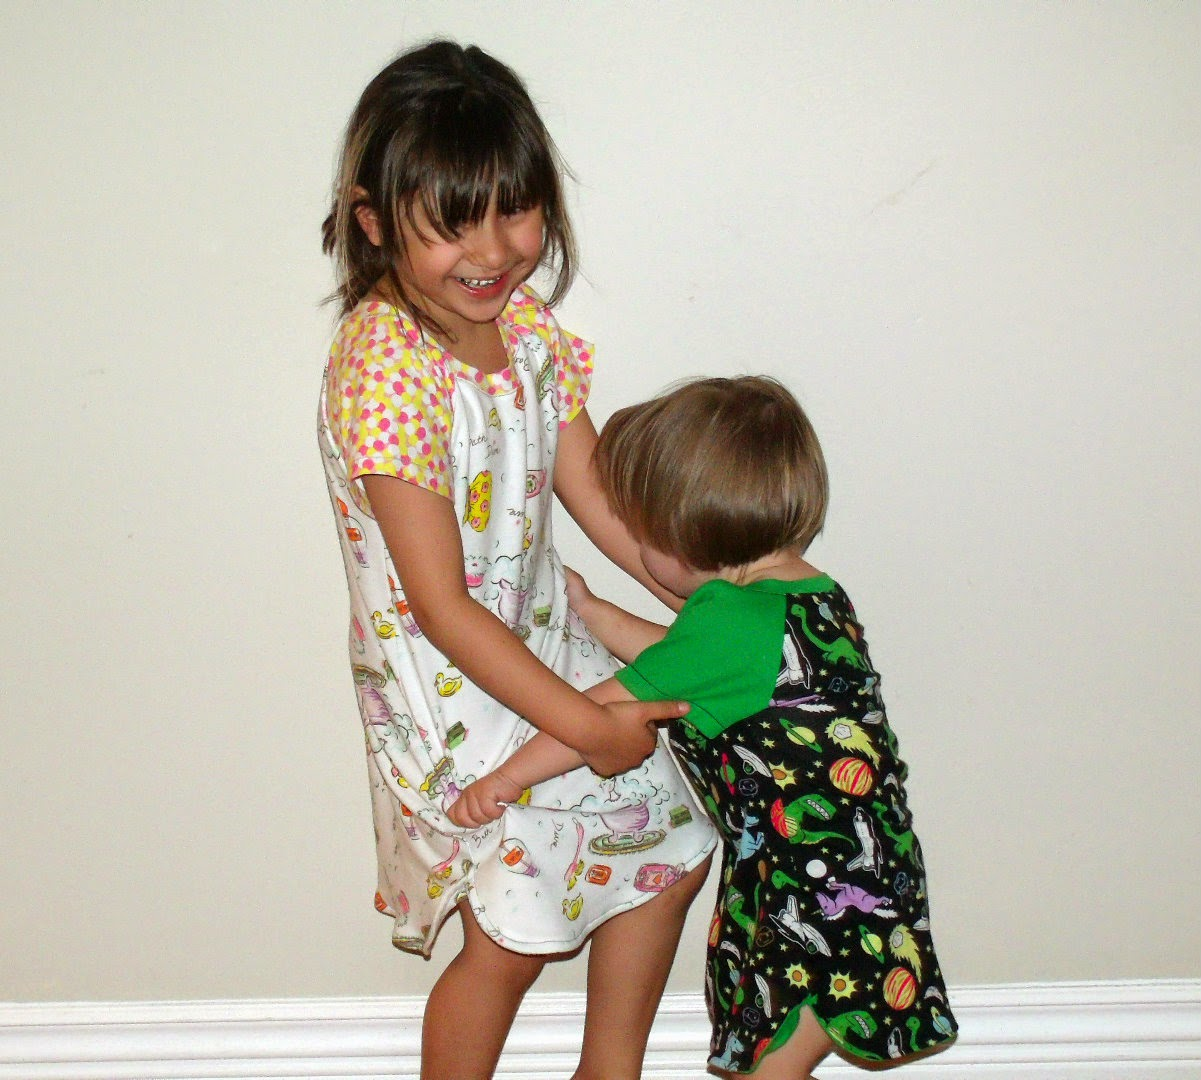 Riley's Nightgown and Shirt from EYMM by Keep Calm and Carrion